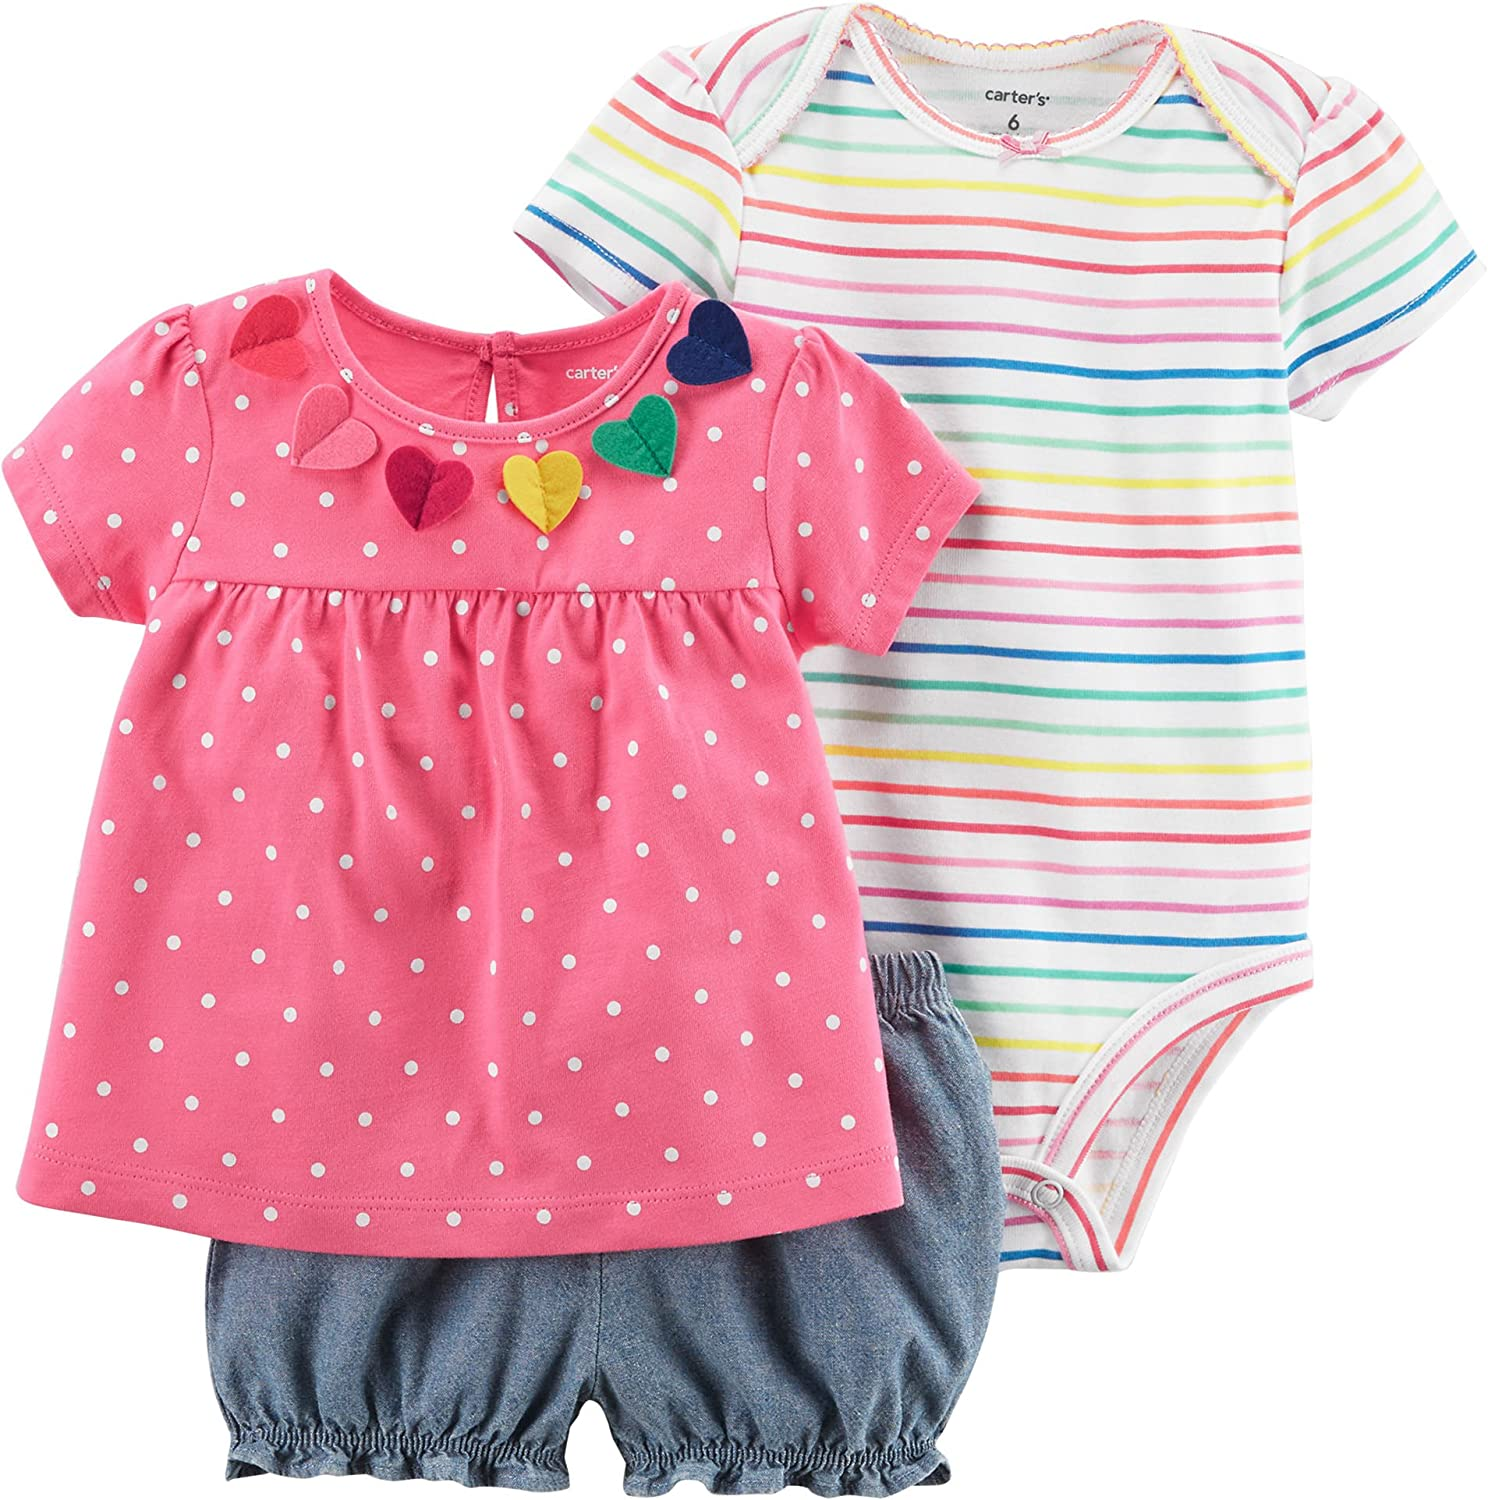 Carters Baby Girls Boho /& Polka Dots 3-Piece Set